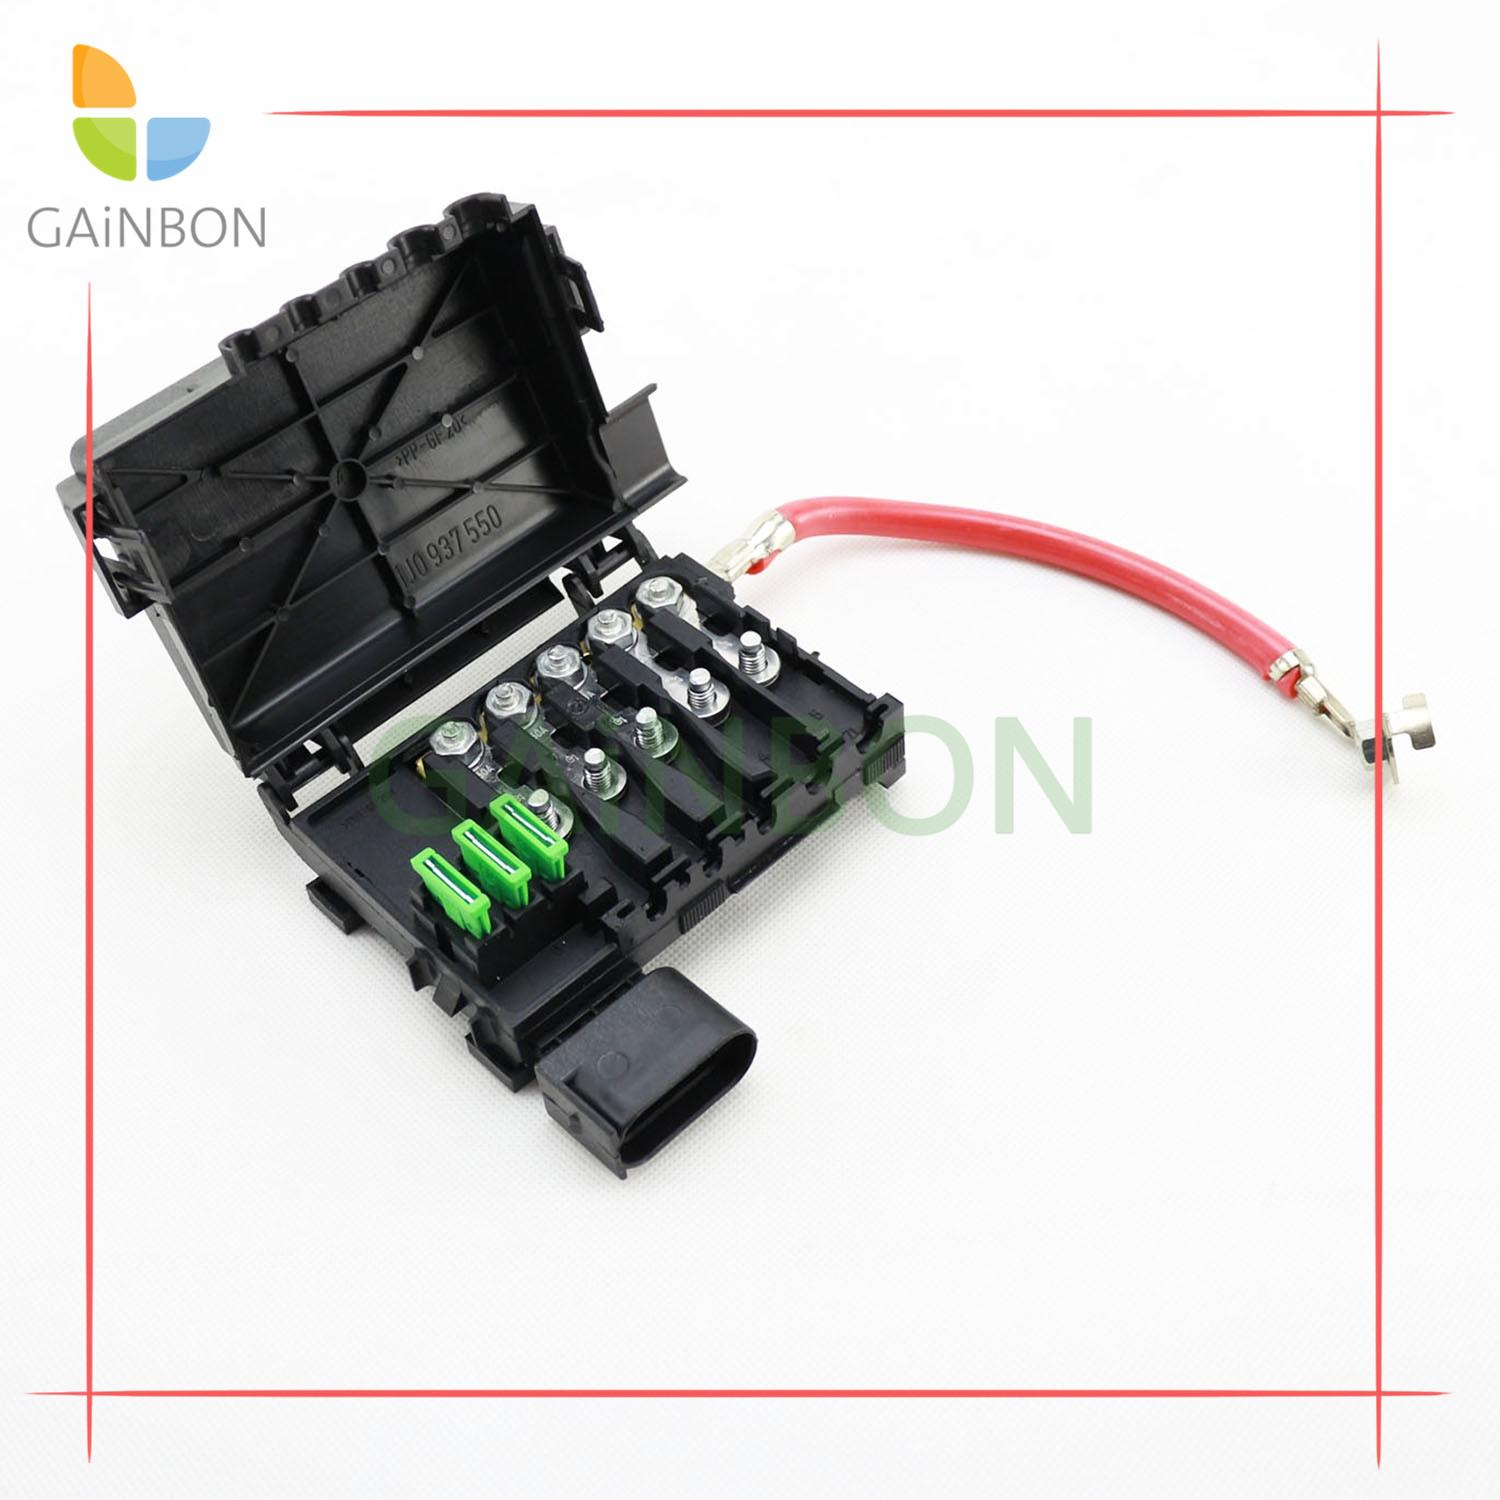 vw battery fuse box vw get free image about wiring diagram 2001 Volkswagen Jetta  Fuse Diagram 2010 VW Jetta Fuse Box Diagram